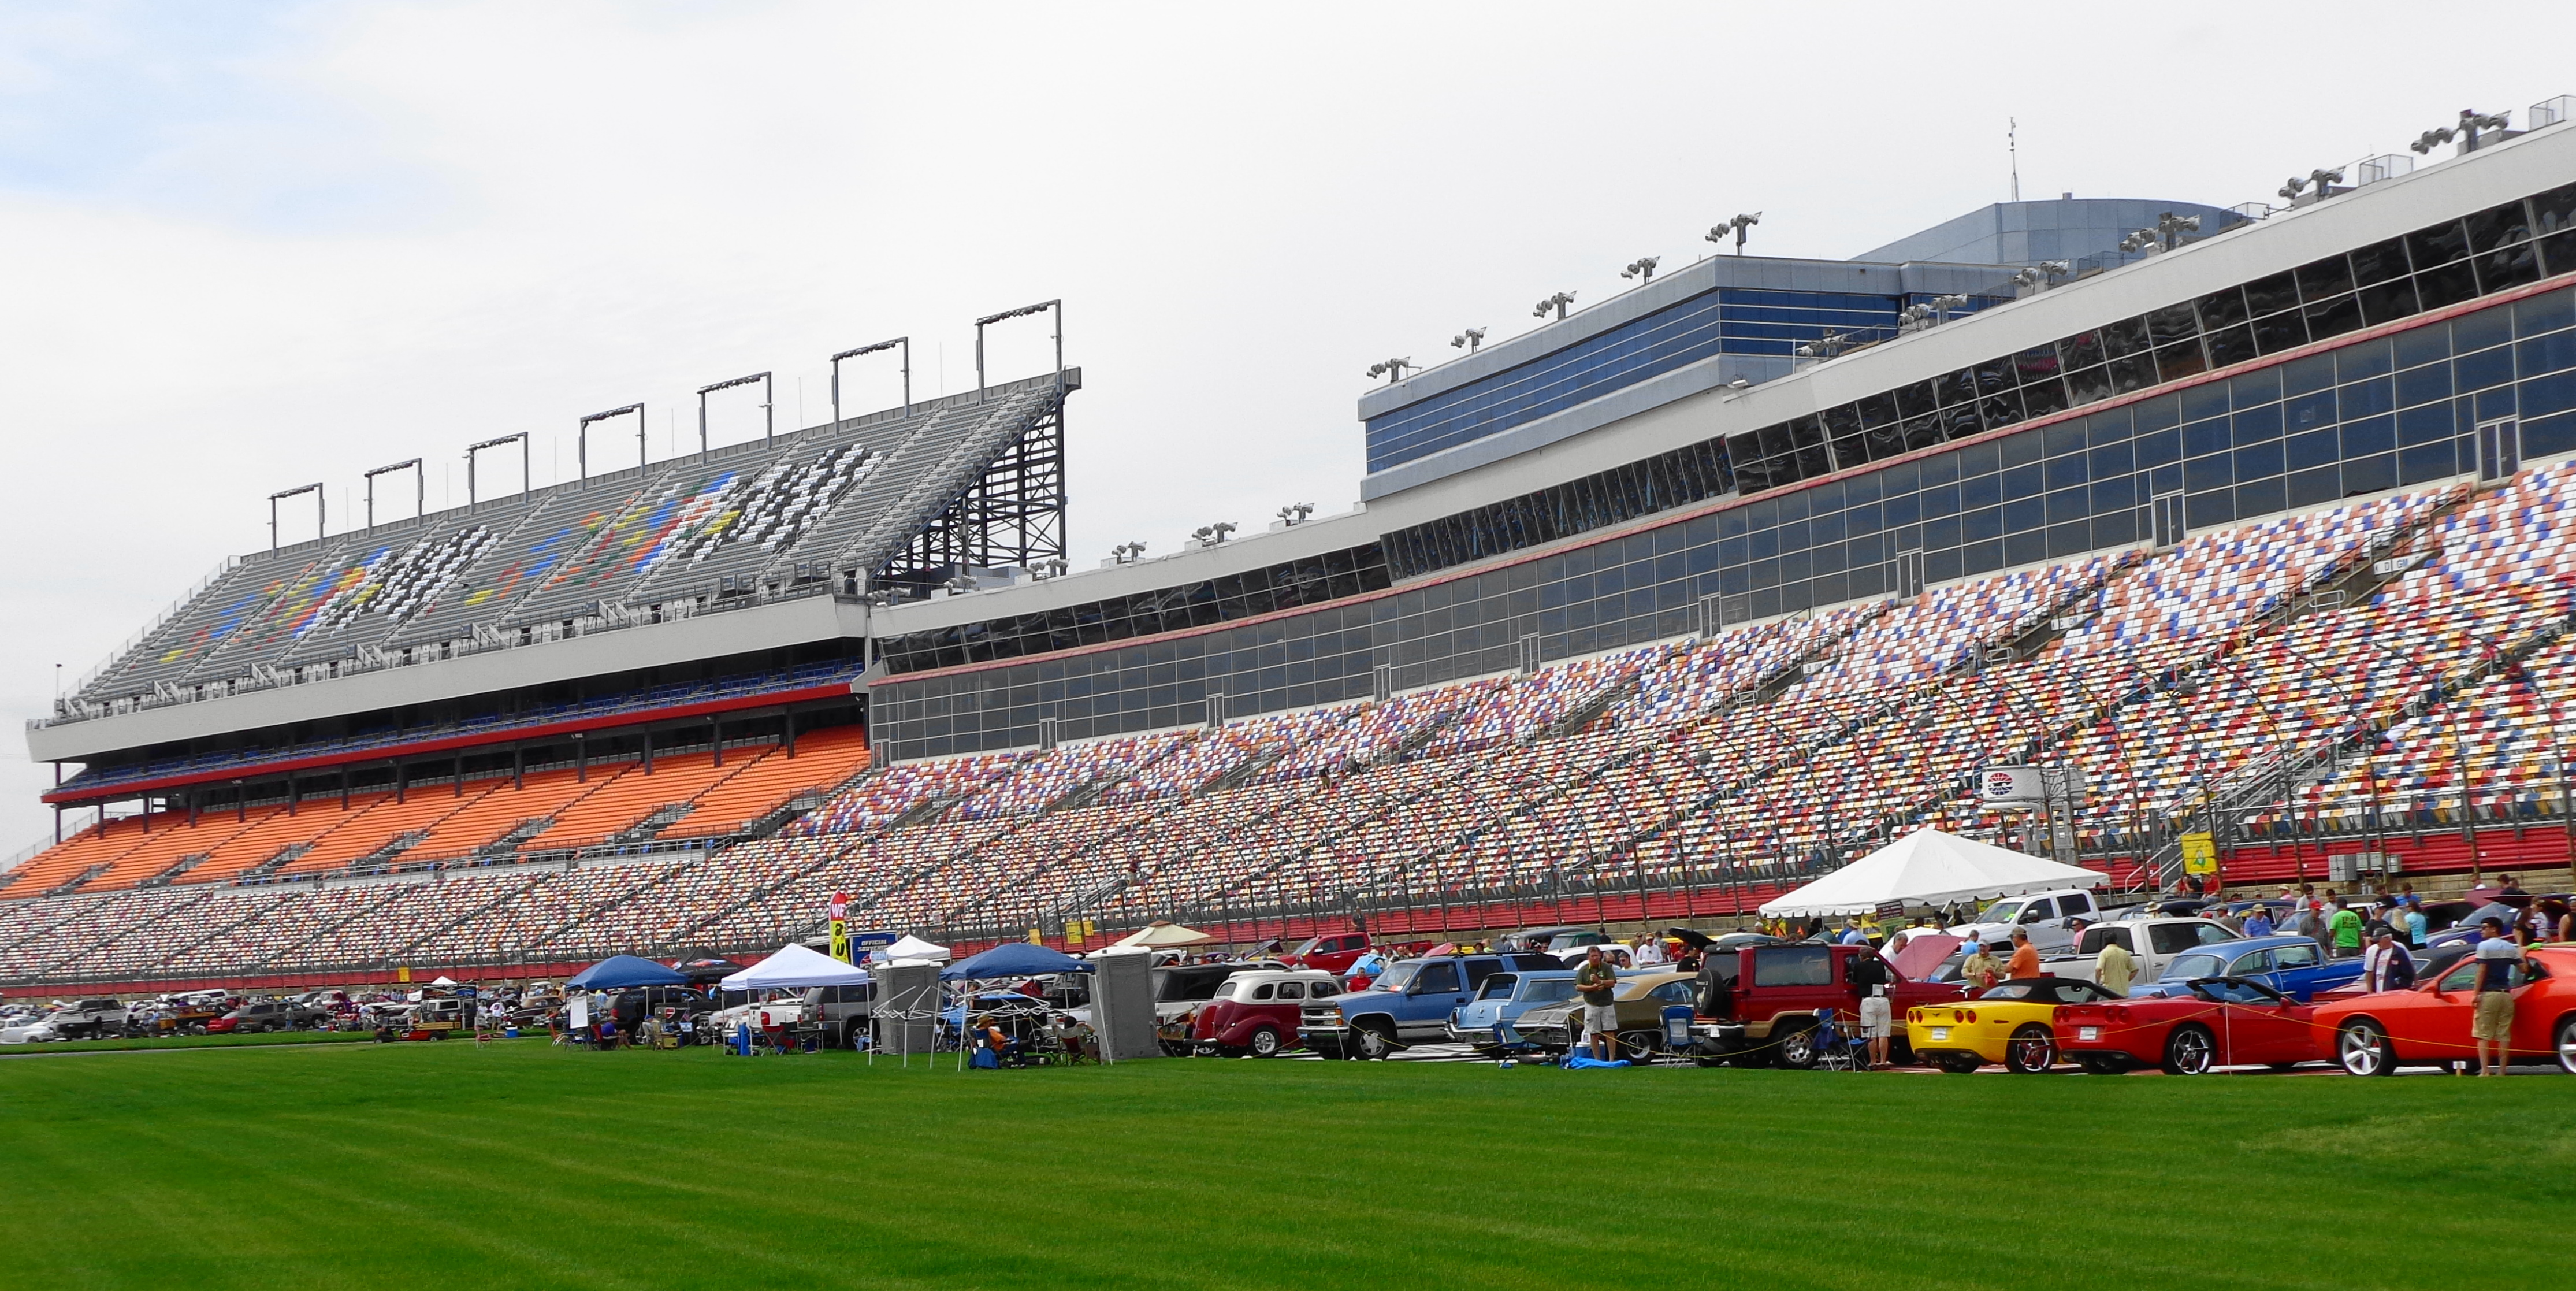 Oldies but goodies liv2rv for Charlotte motor speedway pictures